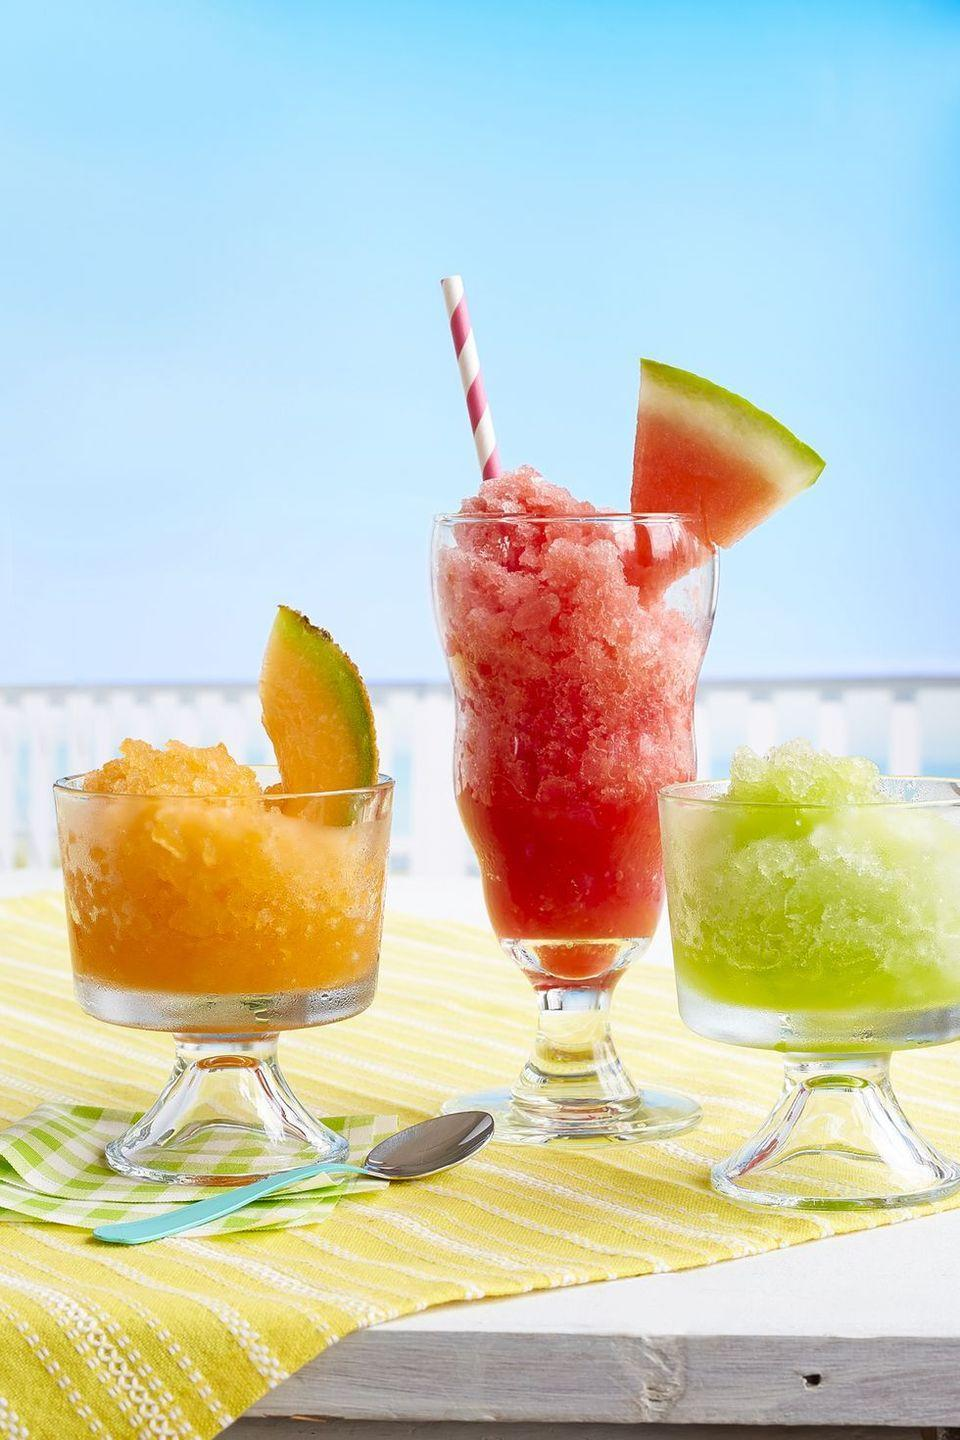 """<p>Pick your favorite: watermelon-lime, honeydew-ginger-mint or cantaloupe-basil shaved ice (or try all three!).</p><p><em><a href=""""https://www.womansday.com/food-recipes/food-drinks/recipes/a59422/summer-melon-slushies-recipe/"""" rel=""""nofollow noopener"""" target=""""_blank"""" data-ylk=""""slk:Get the recipe from Woman's Day »"""" class=""""link rapid-noclick-resp"""">Get the recipe from Woman's Day »</a></em></p>"""